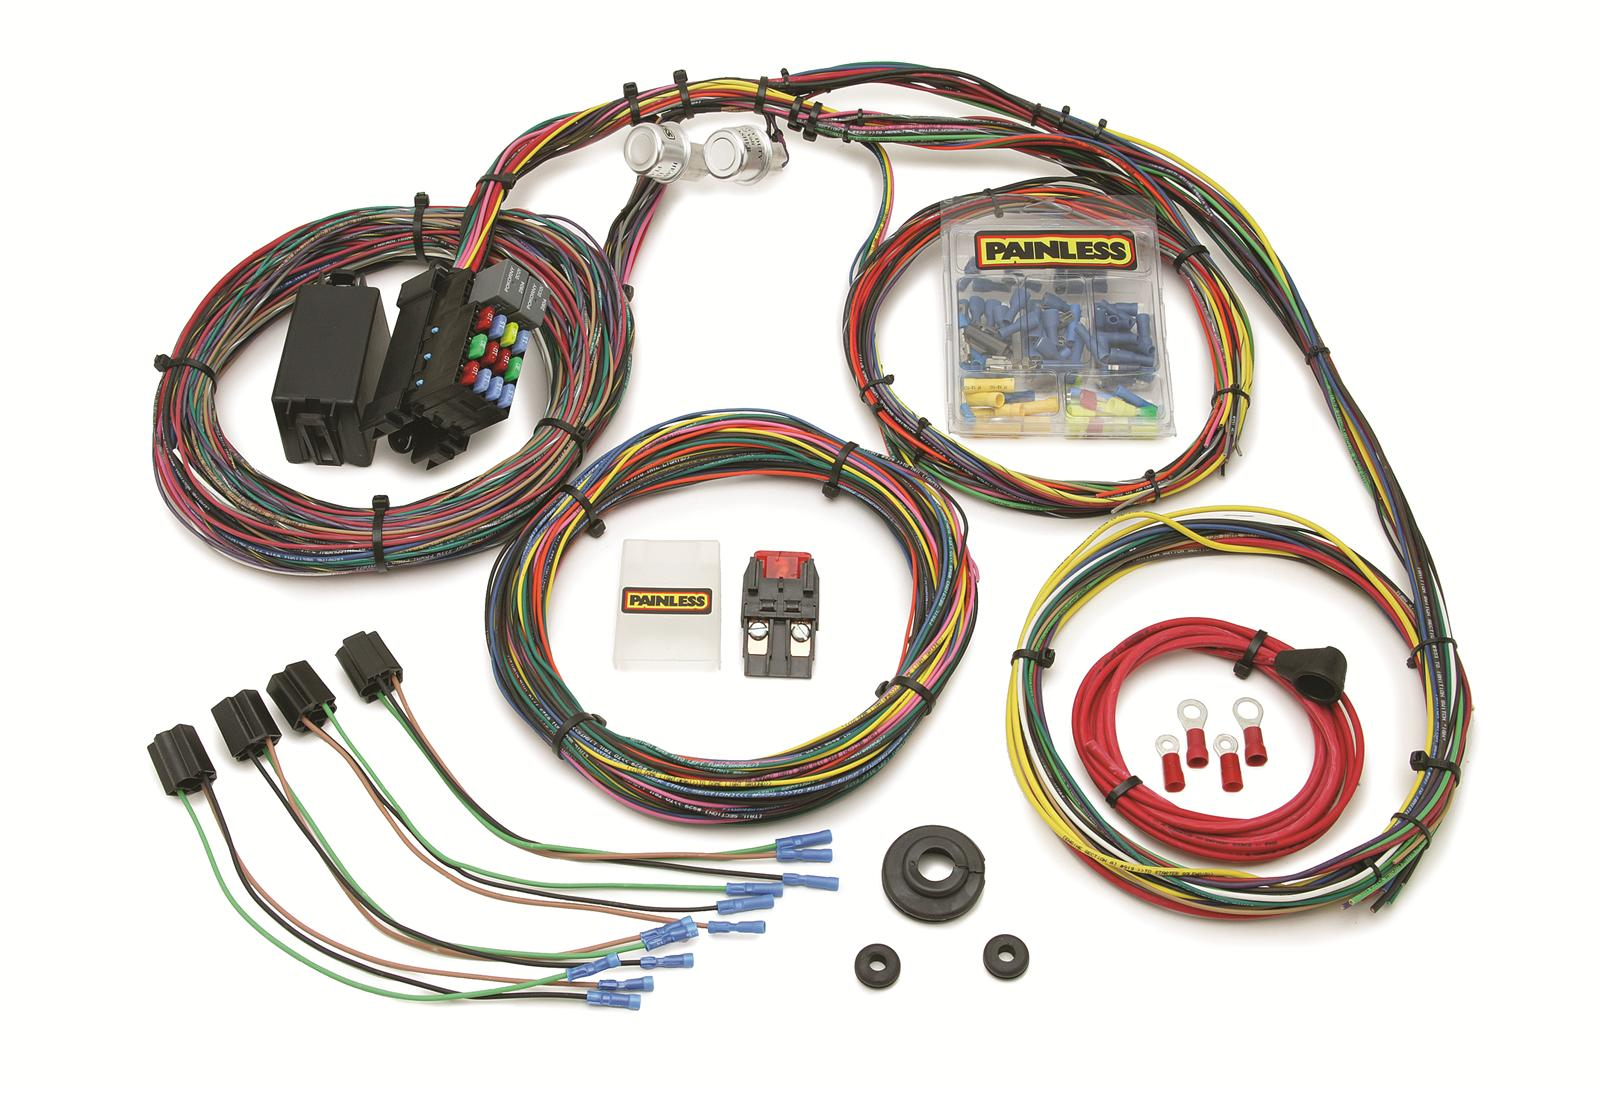 prf 10127_xl painless performance 21 circuit mopar color coded universal wiring 21 circuit universal wiring harness diagram at bayanpartner.co